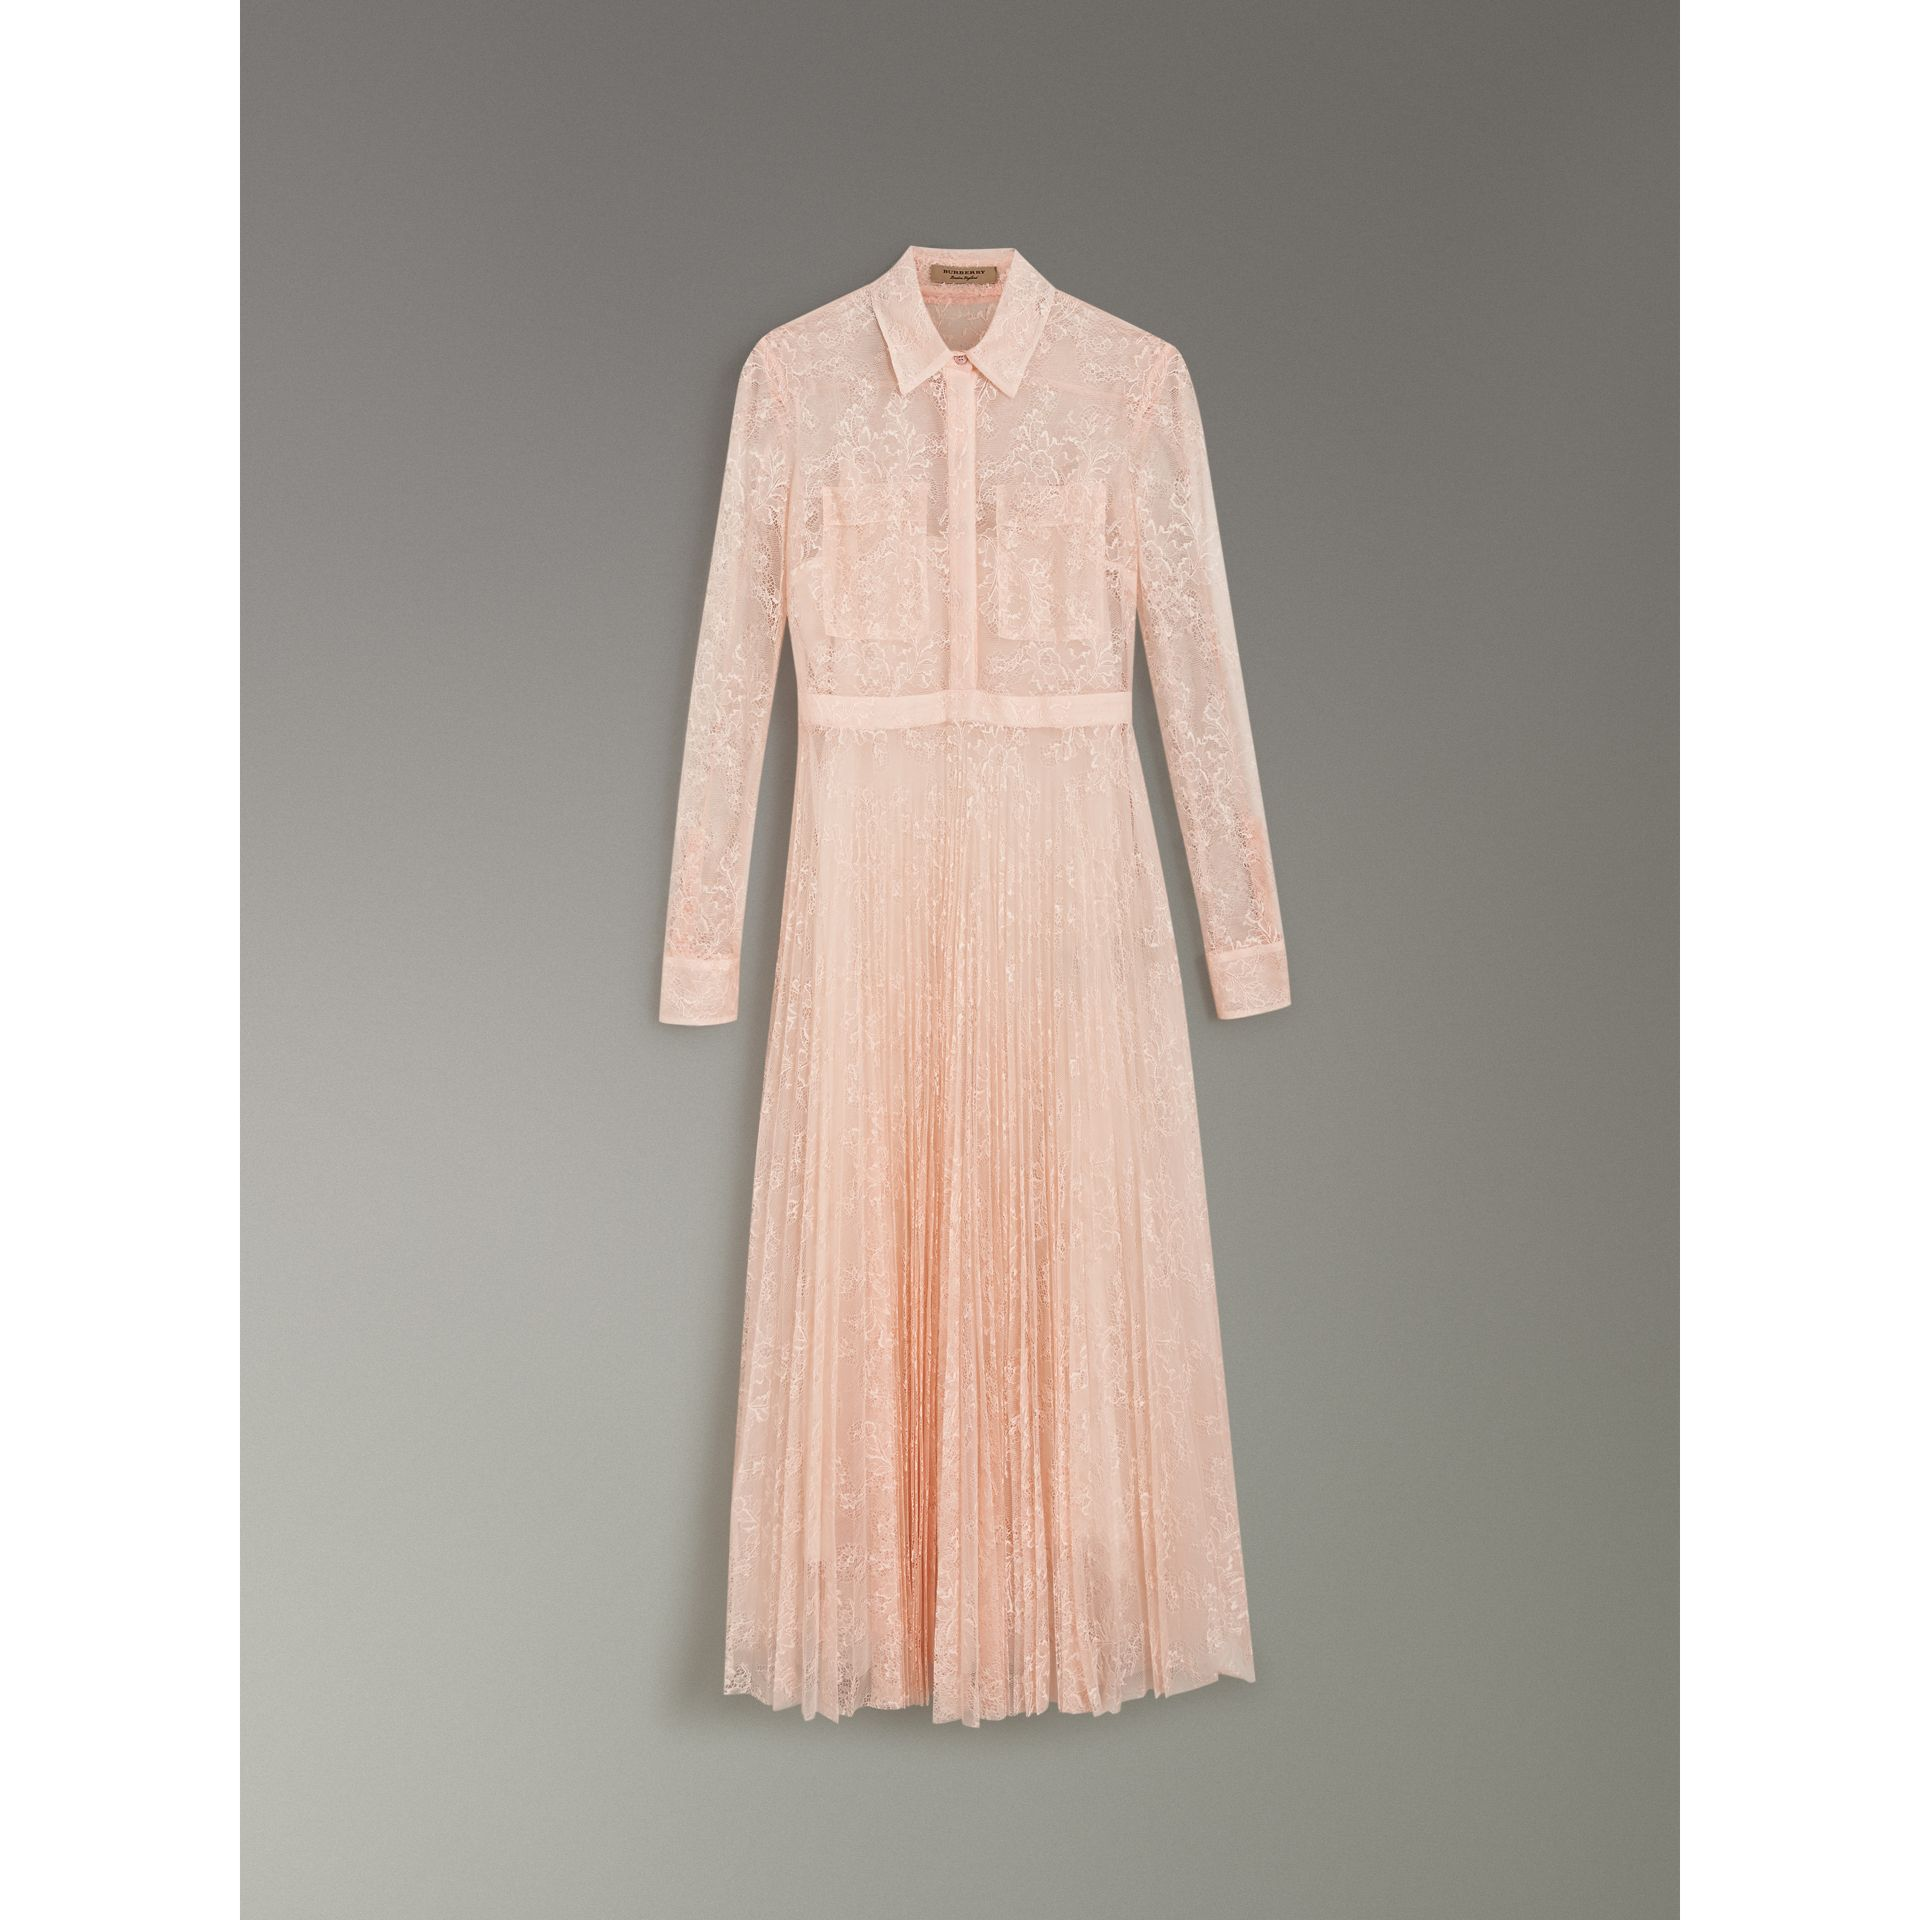 Pleated Lace Dress in Powder Pink - Women | Burberry Australia - gallery image 3